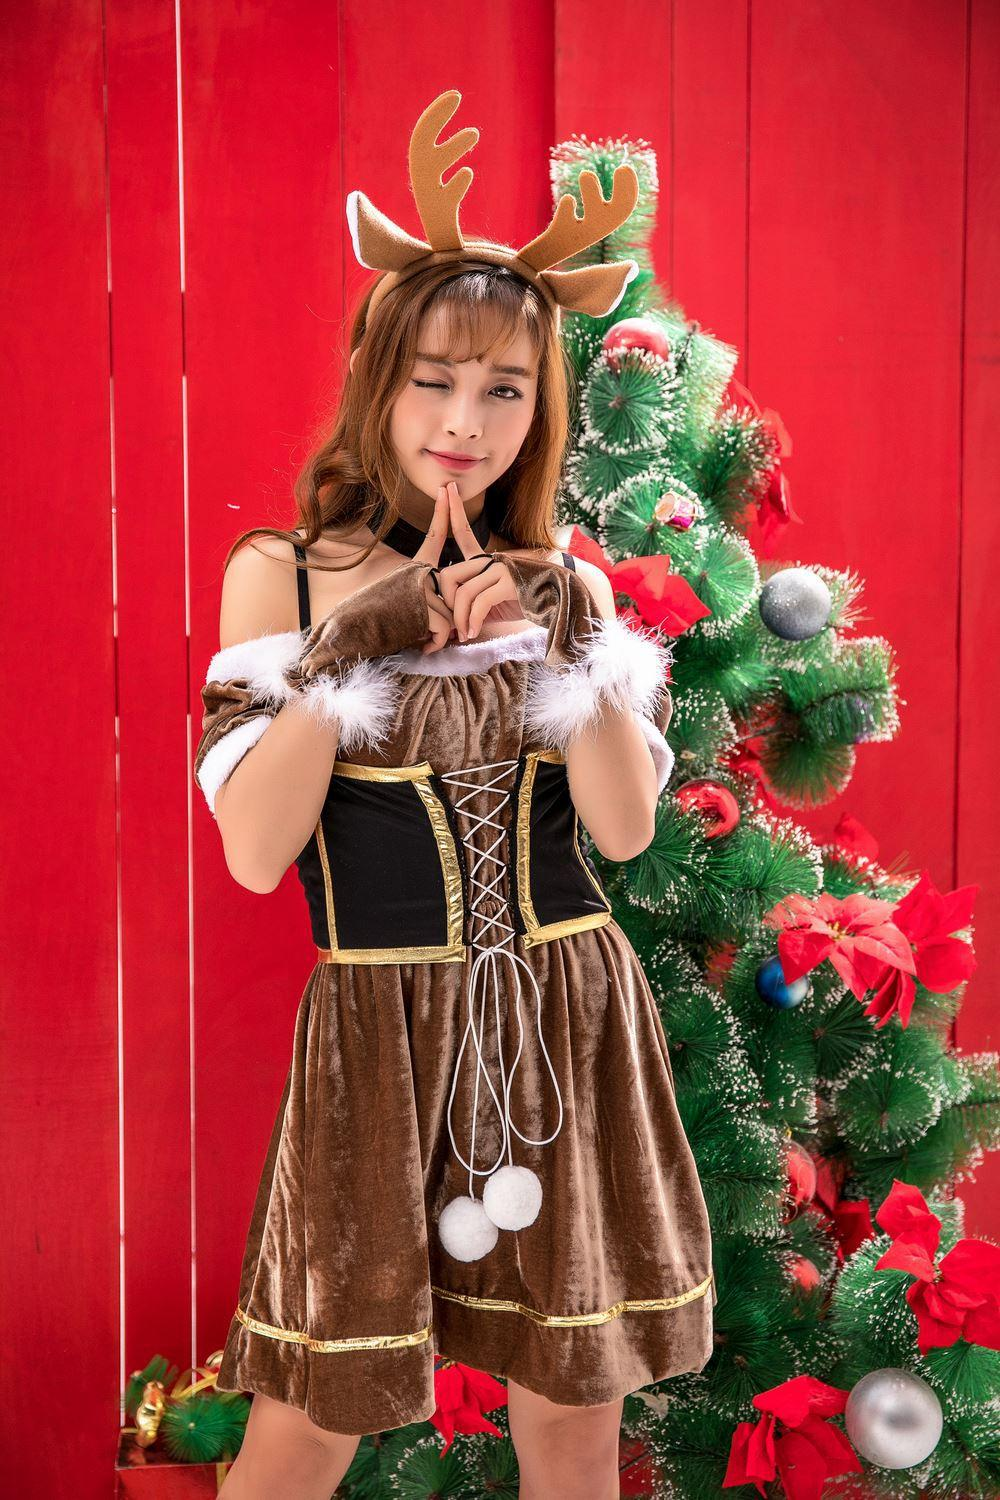 Christmas Clothing Adult Sexy Animal Sika Deer Reindeer Costume Dress Strapless Dress With Brown Halloween Costumes For Groups Of 6 Four Person Halloween ...  sc 1 st  DHgate.com & Christmas Clothing Adult Sexy Animal Sika Deer Reindeer Costume ...